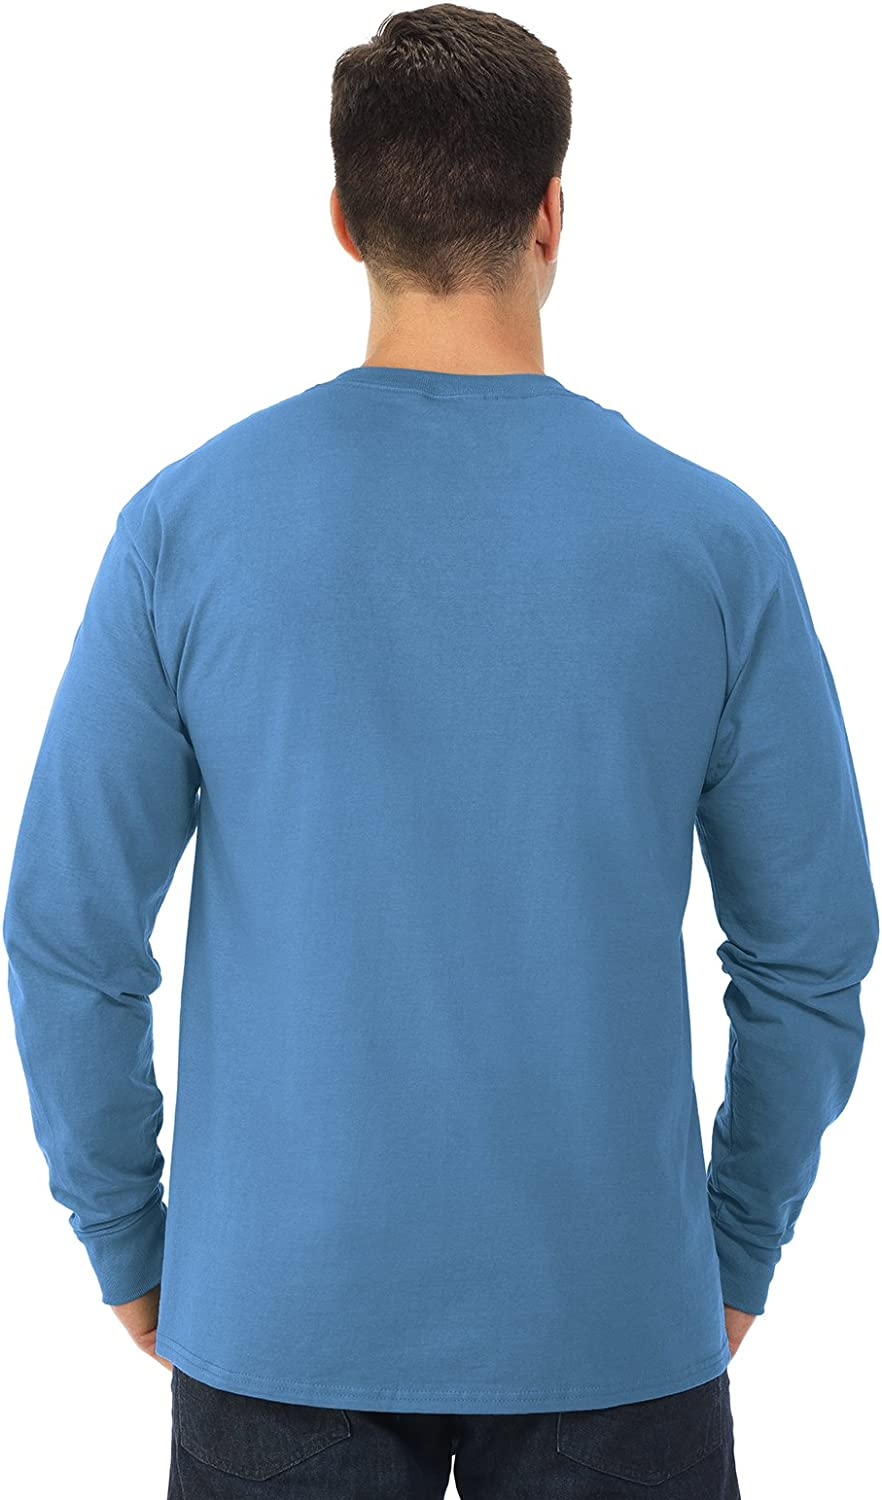 T-shirt a manica lunga 4930R in cotone robusto Fruit Of The Loom